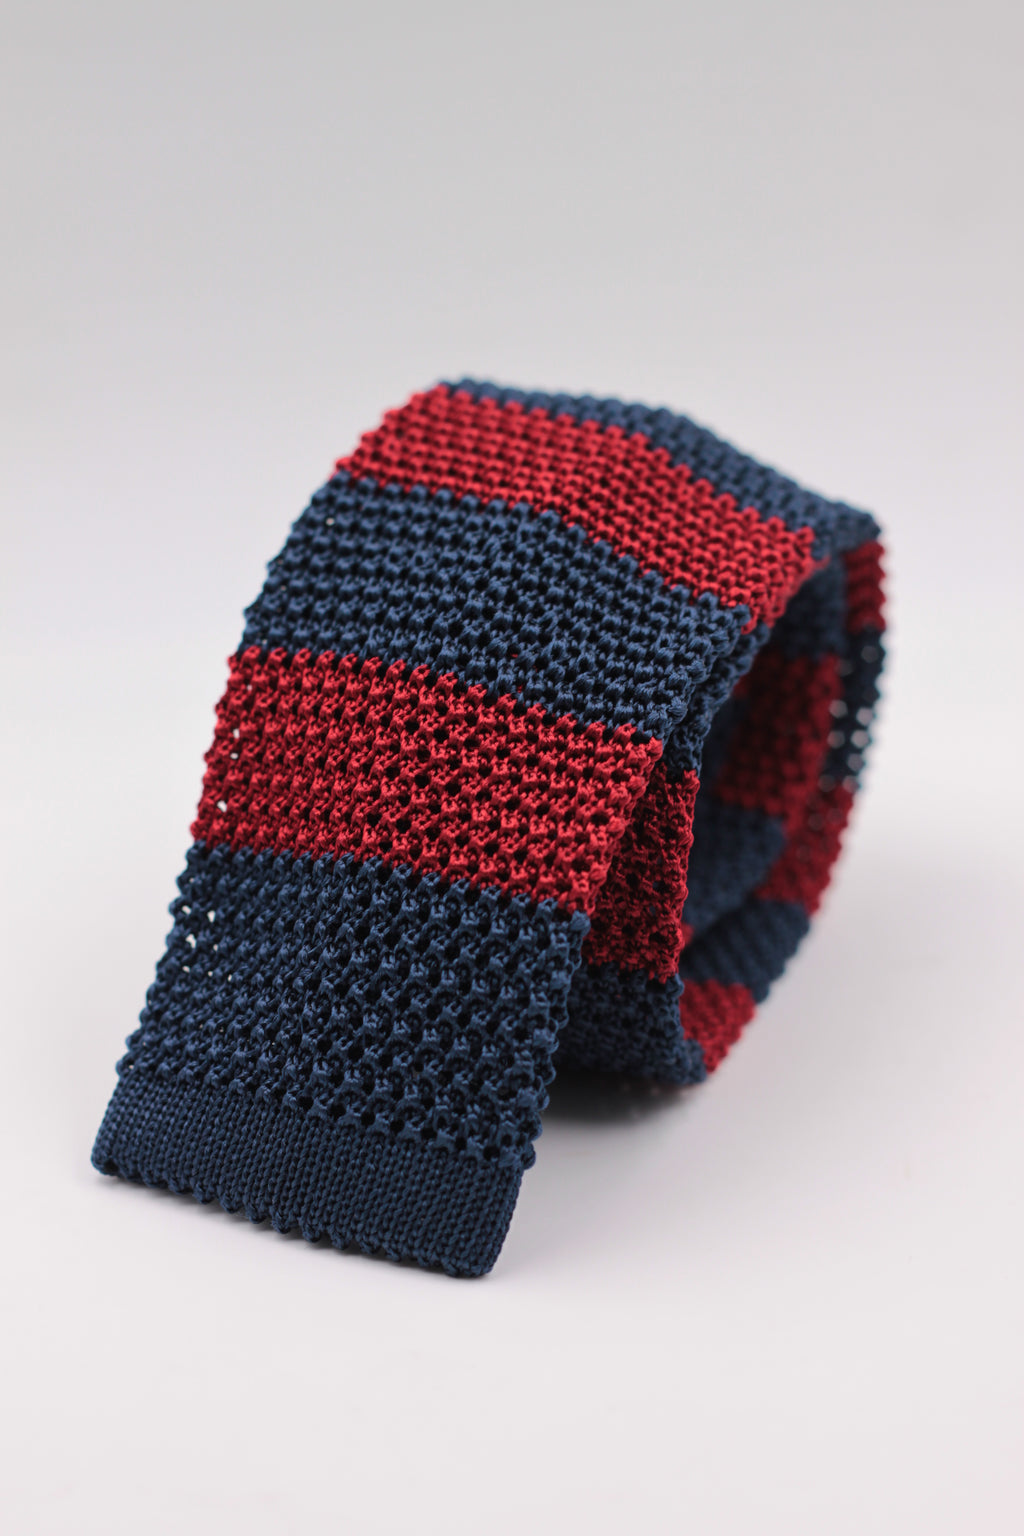 Cruciani & Bella 100% Knitted Silk Blue and Dark Red stripe tie Handmade in Italy 6 cm x 147 cm